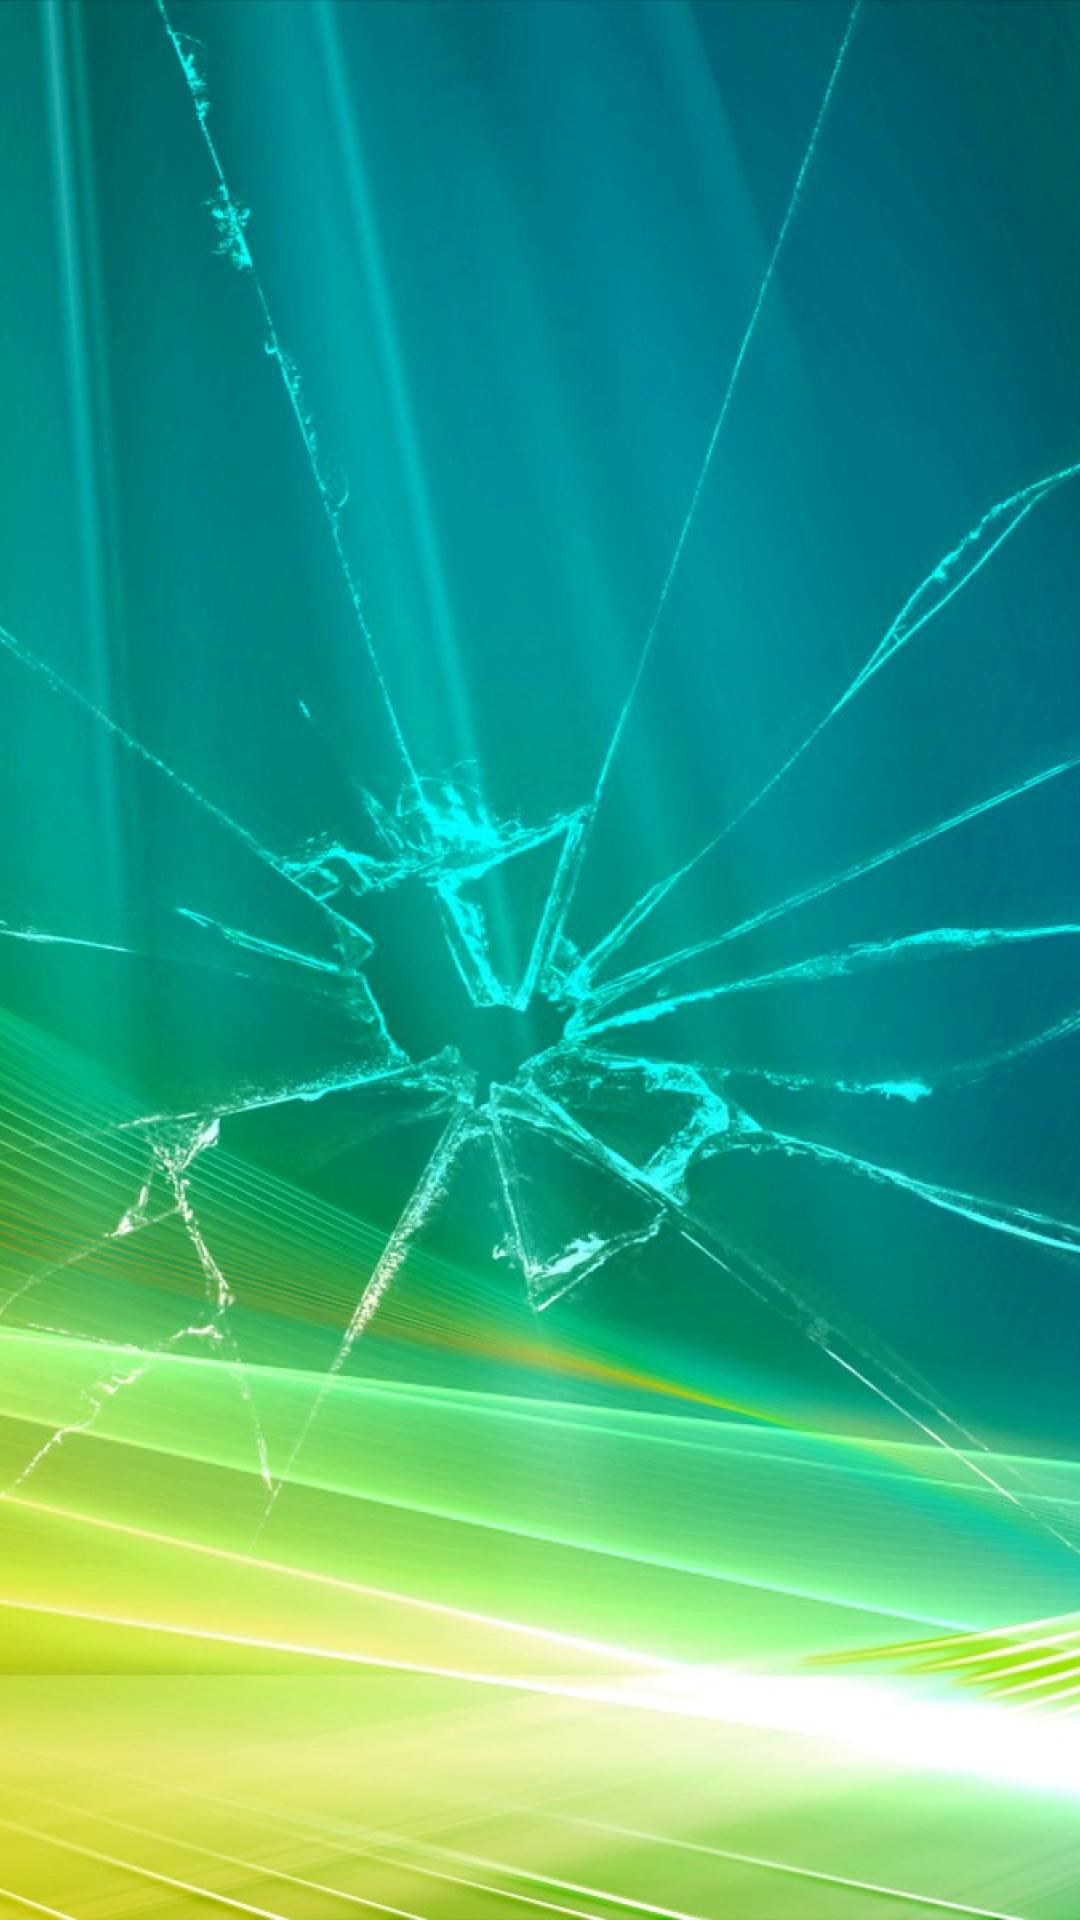 Free Download Cracked Screen Live Wallpaper Screenshot